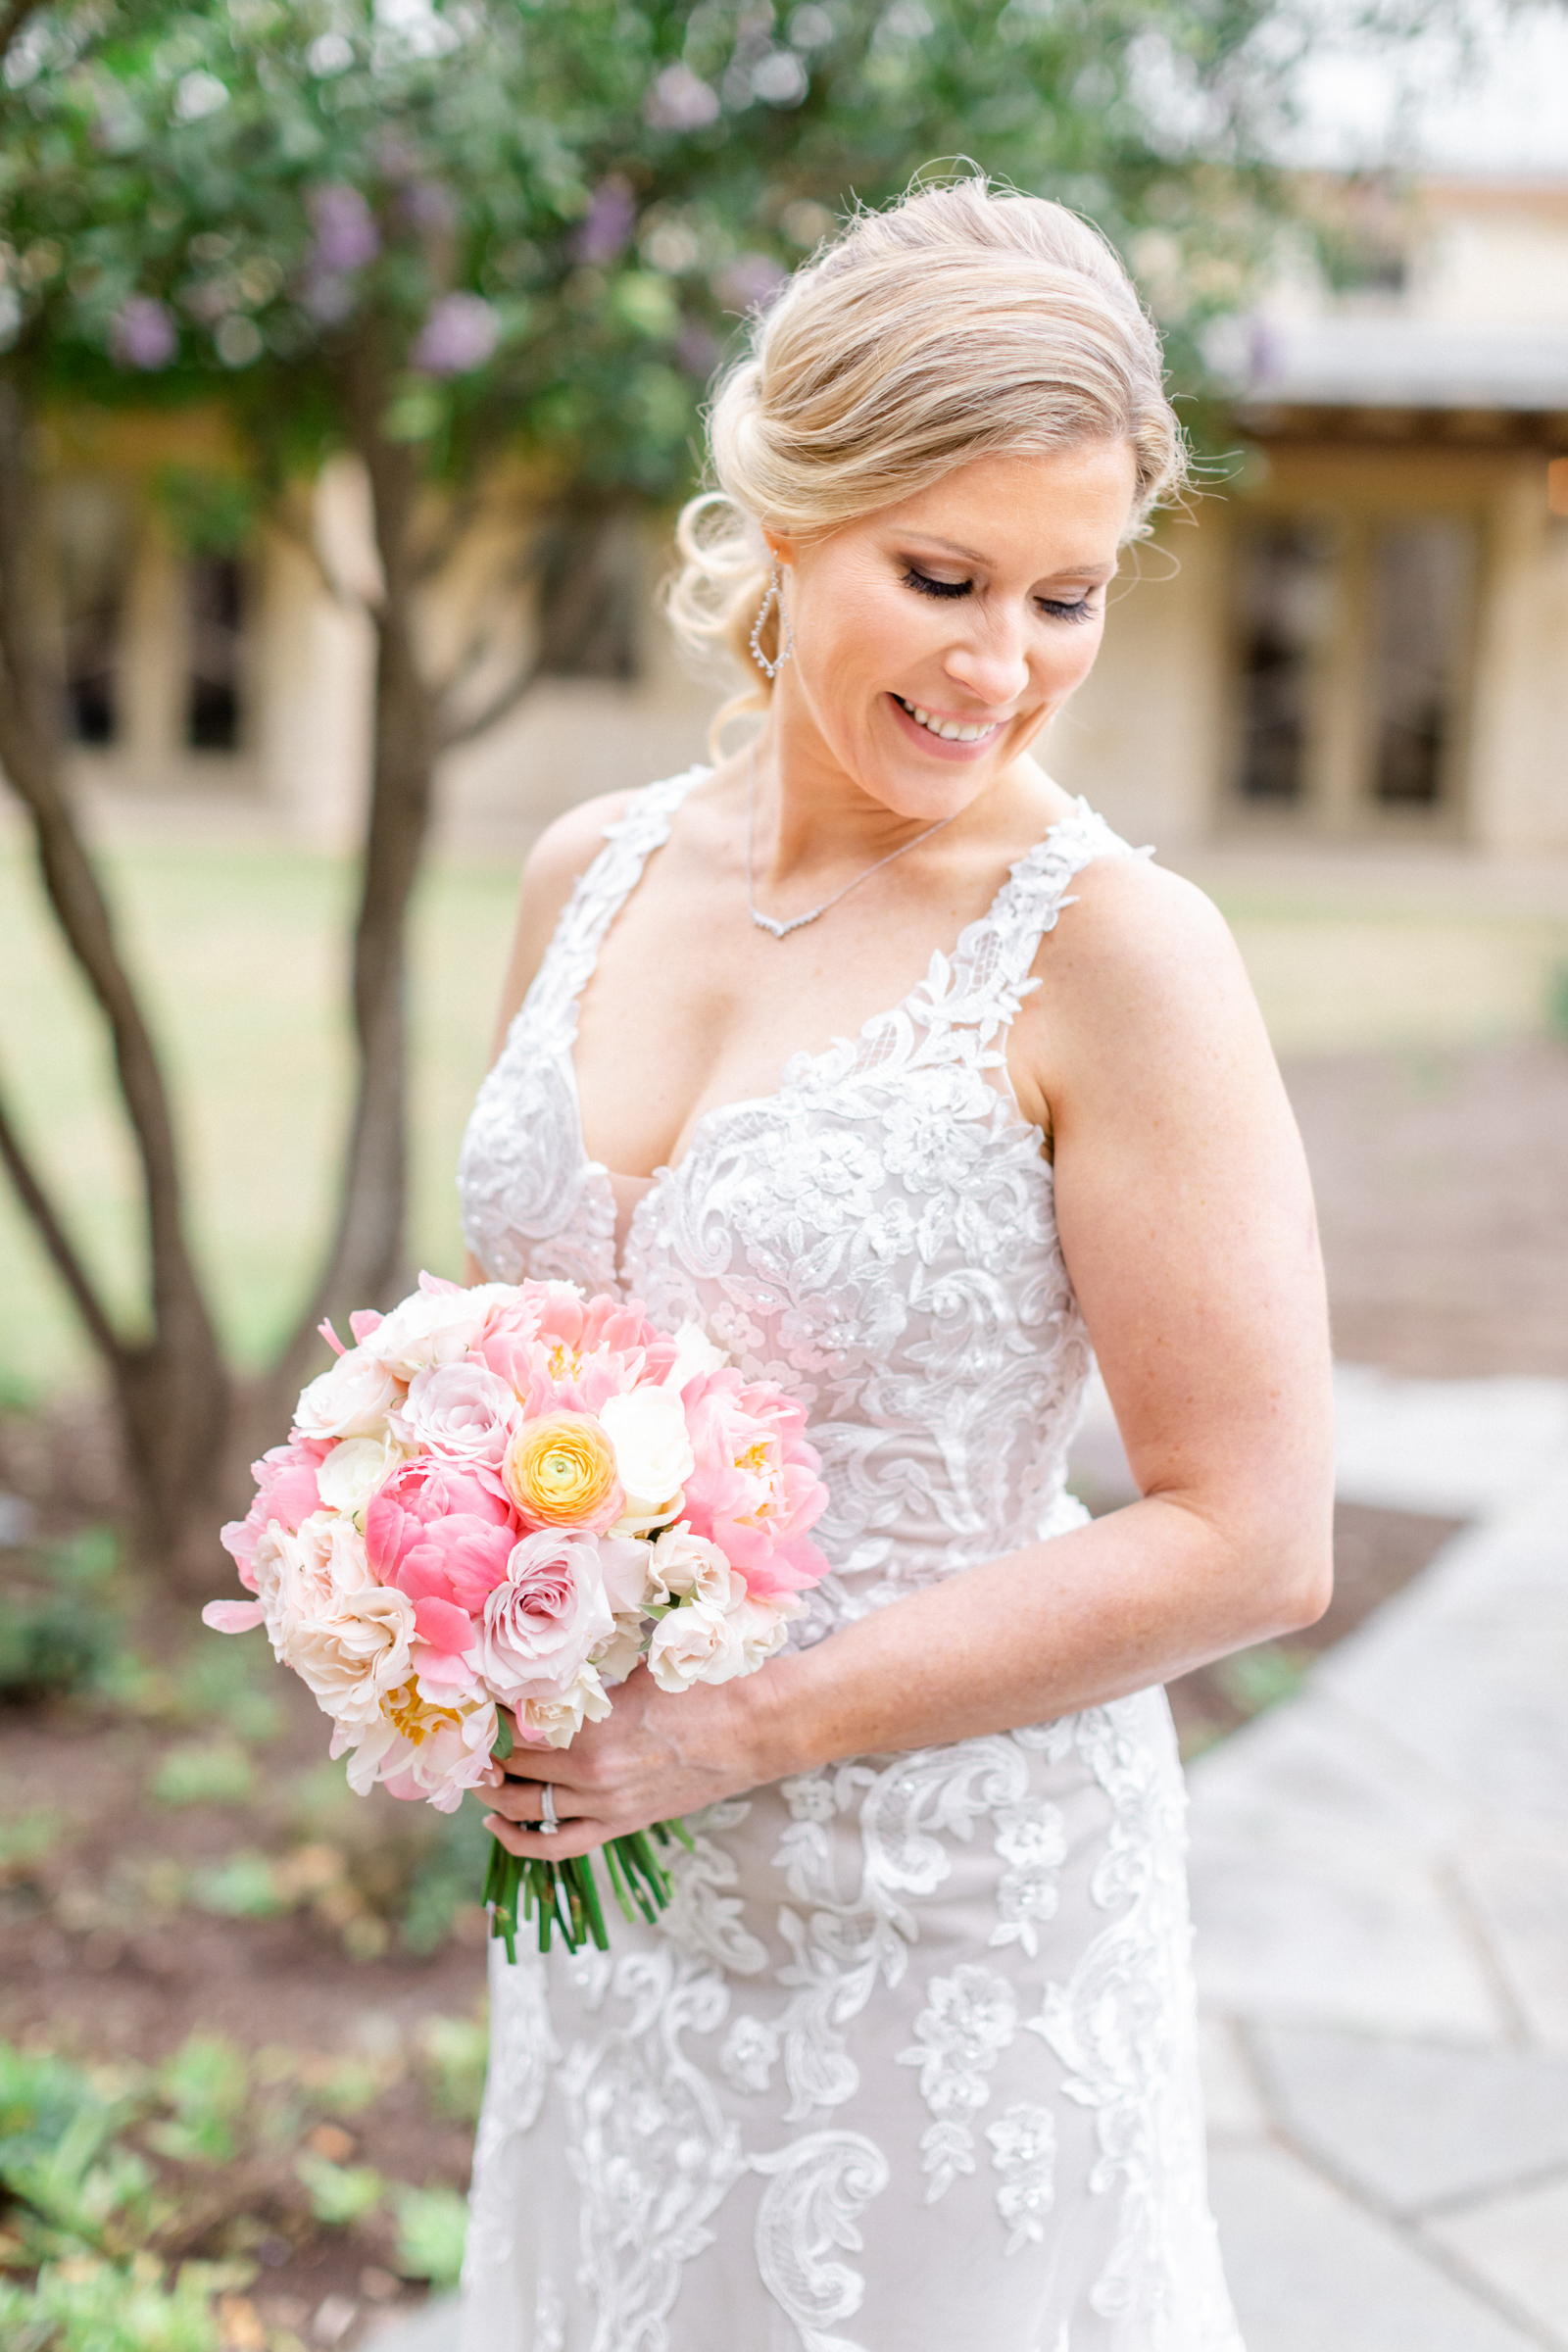 San Antonio Austin Boerne New Braunfels Texas Wedding Engagement Photographer Photography Hill Country Texas JW Marriott Sunday House Wedding Spring Wedding Coral Pink Intimate Wedding San Antonio Austin Texas photographer 51